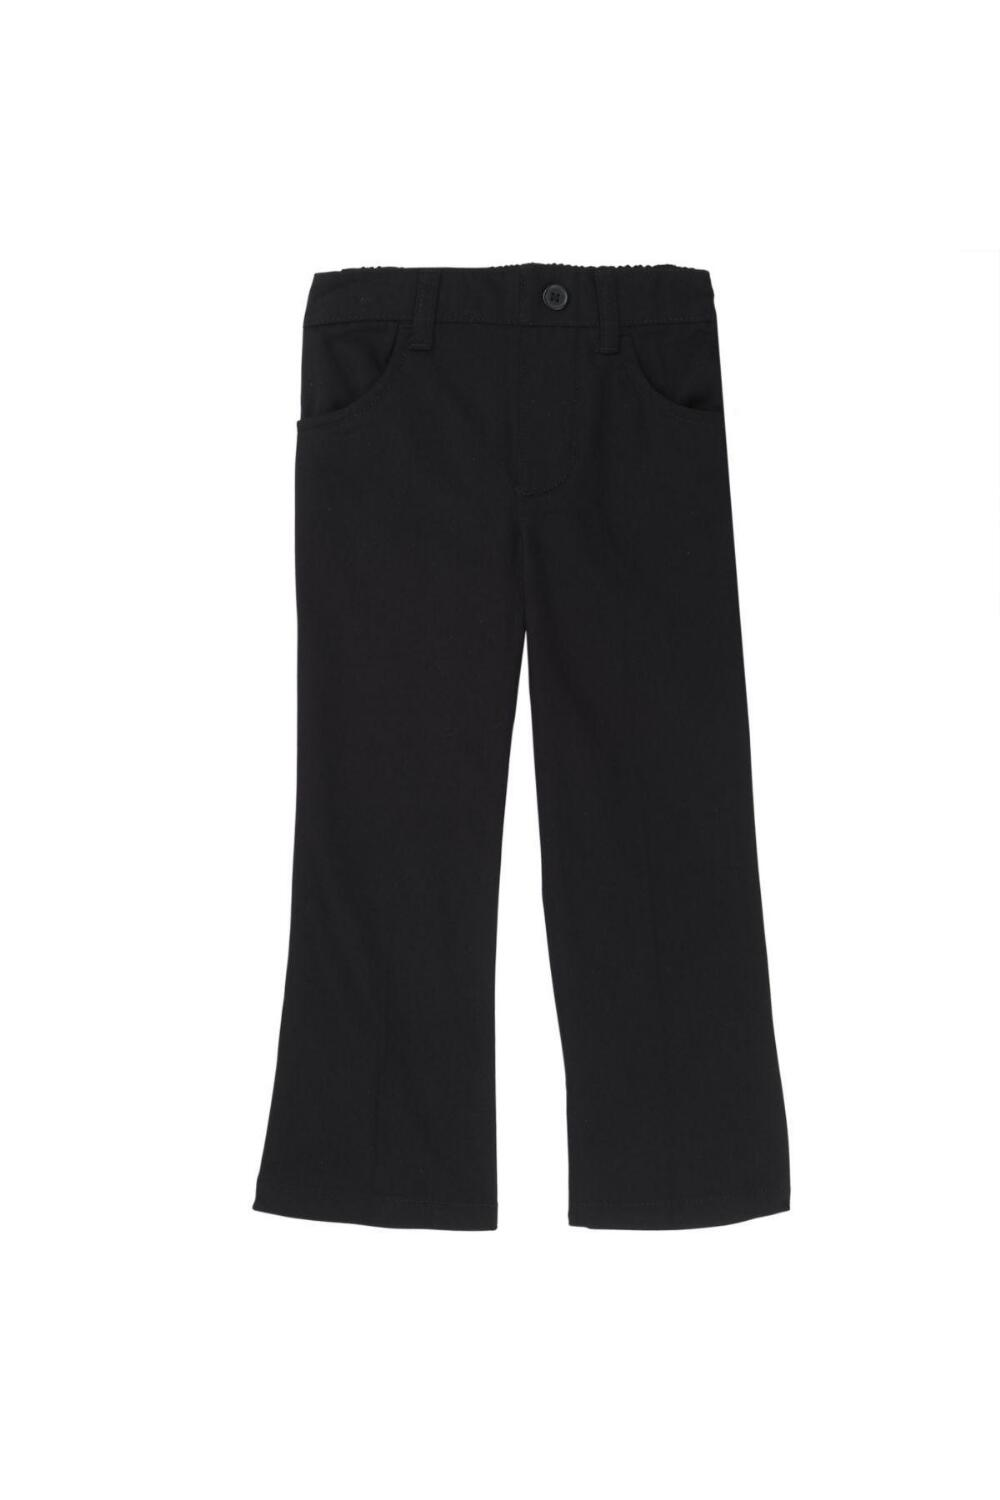 French Toast Girl's Straight Leg Twill Pant (Pant Color: Black, Pant Size: Size 4T)